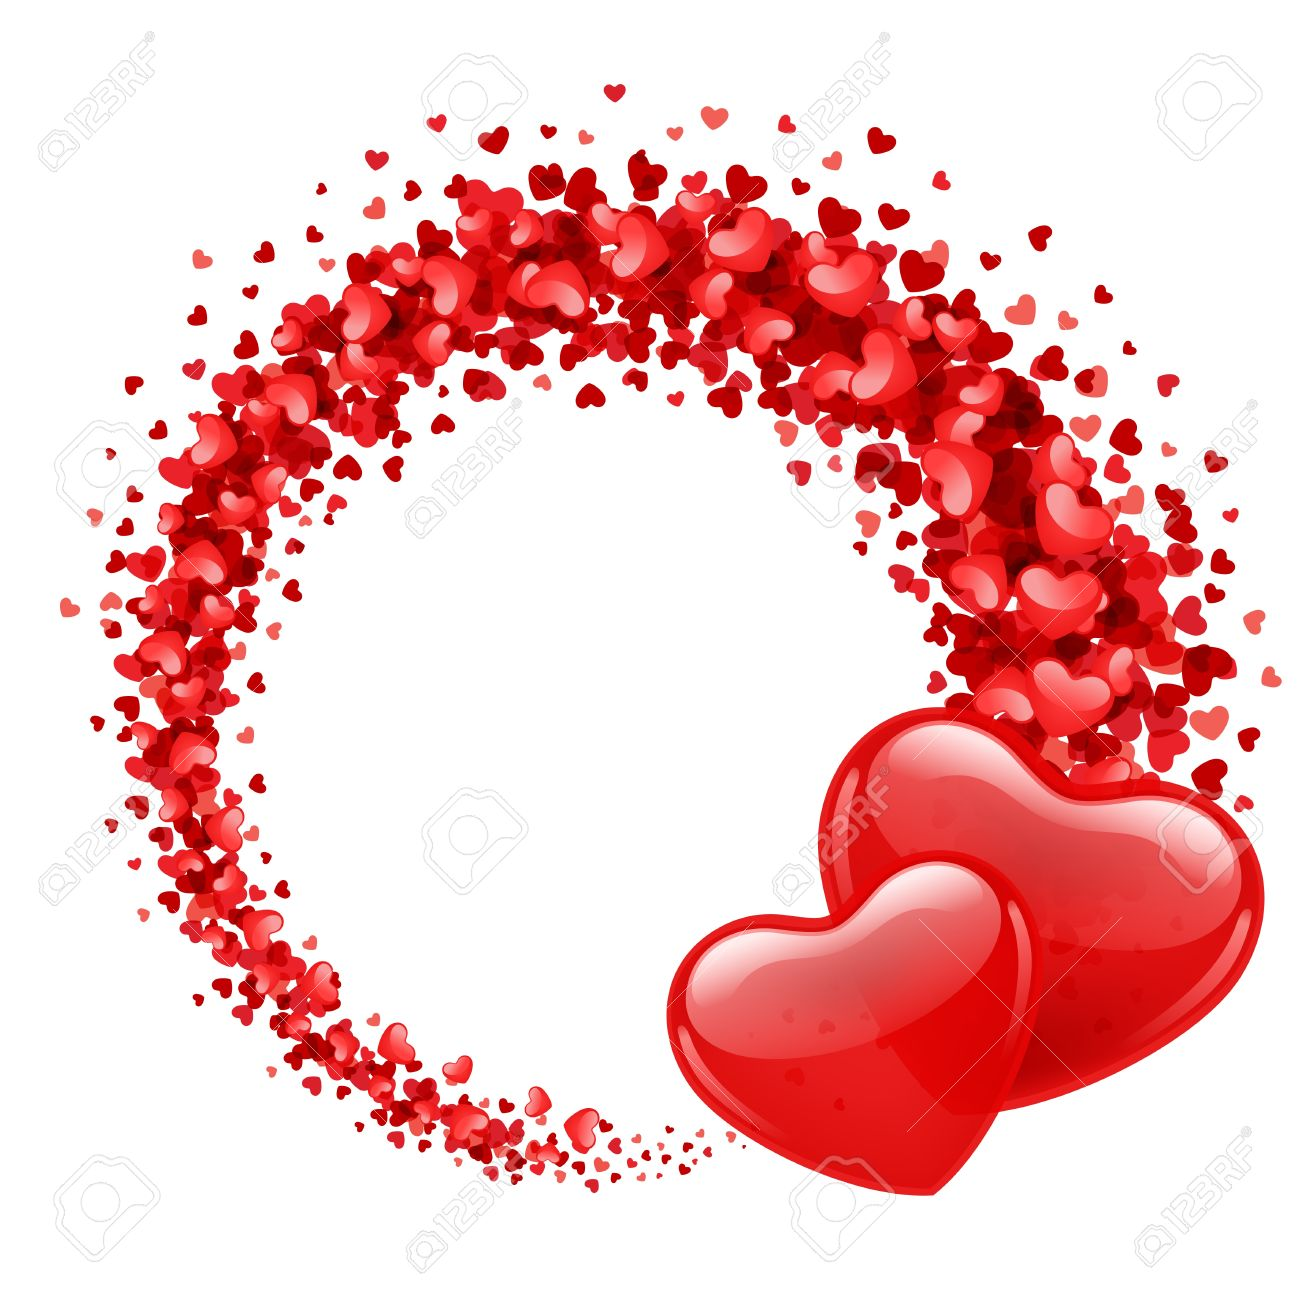 Valentine Day Vector Background With Two Hearts Royalty Free ...